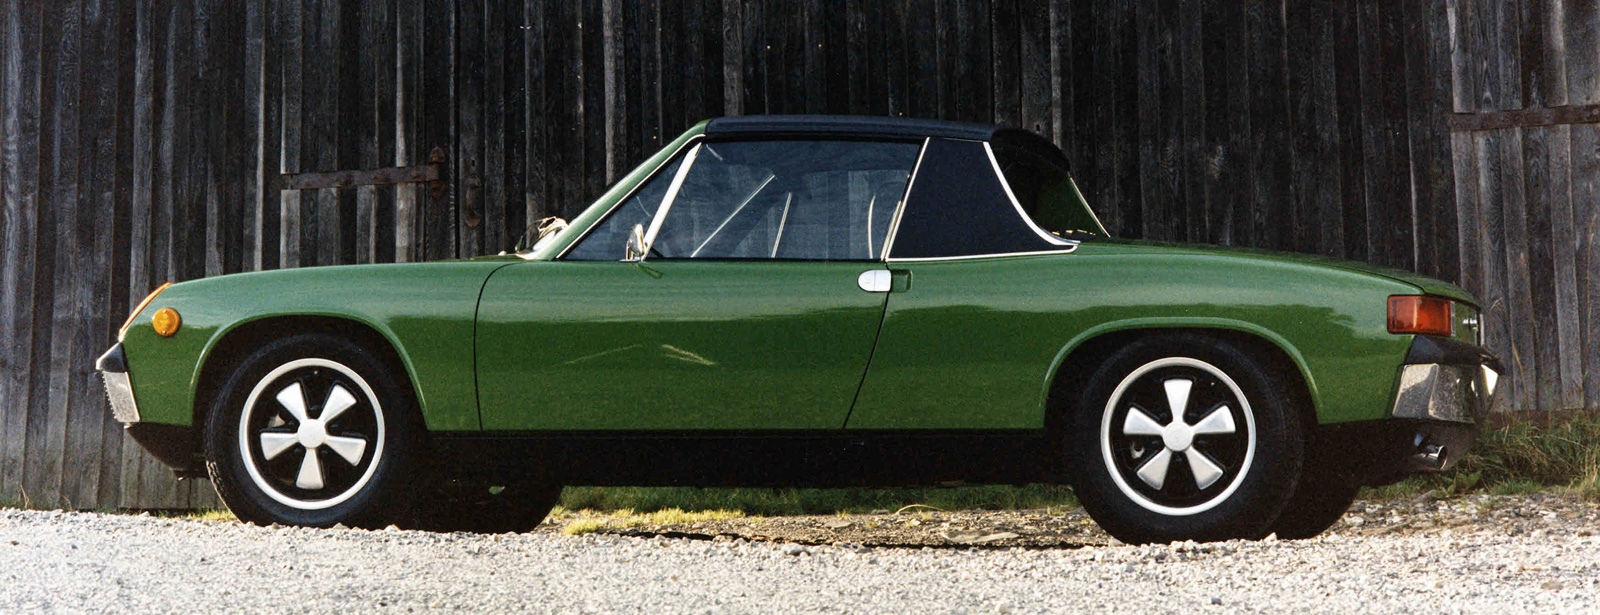 Porsche 914 6 Porsche Great Britain